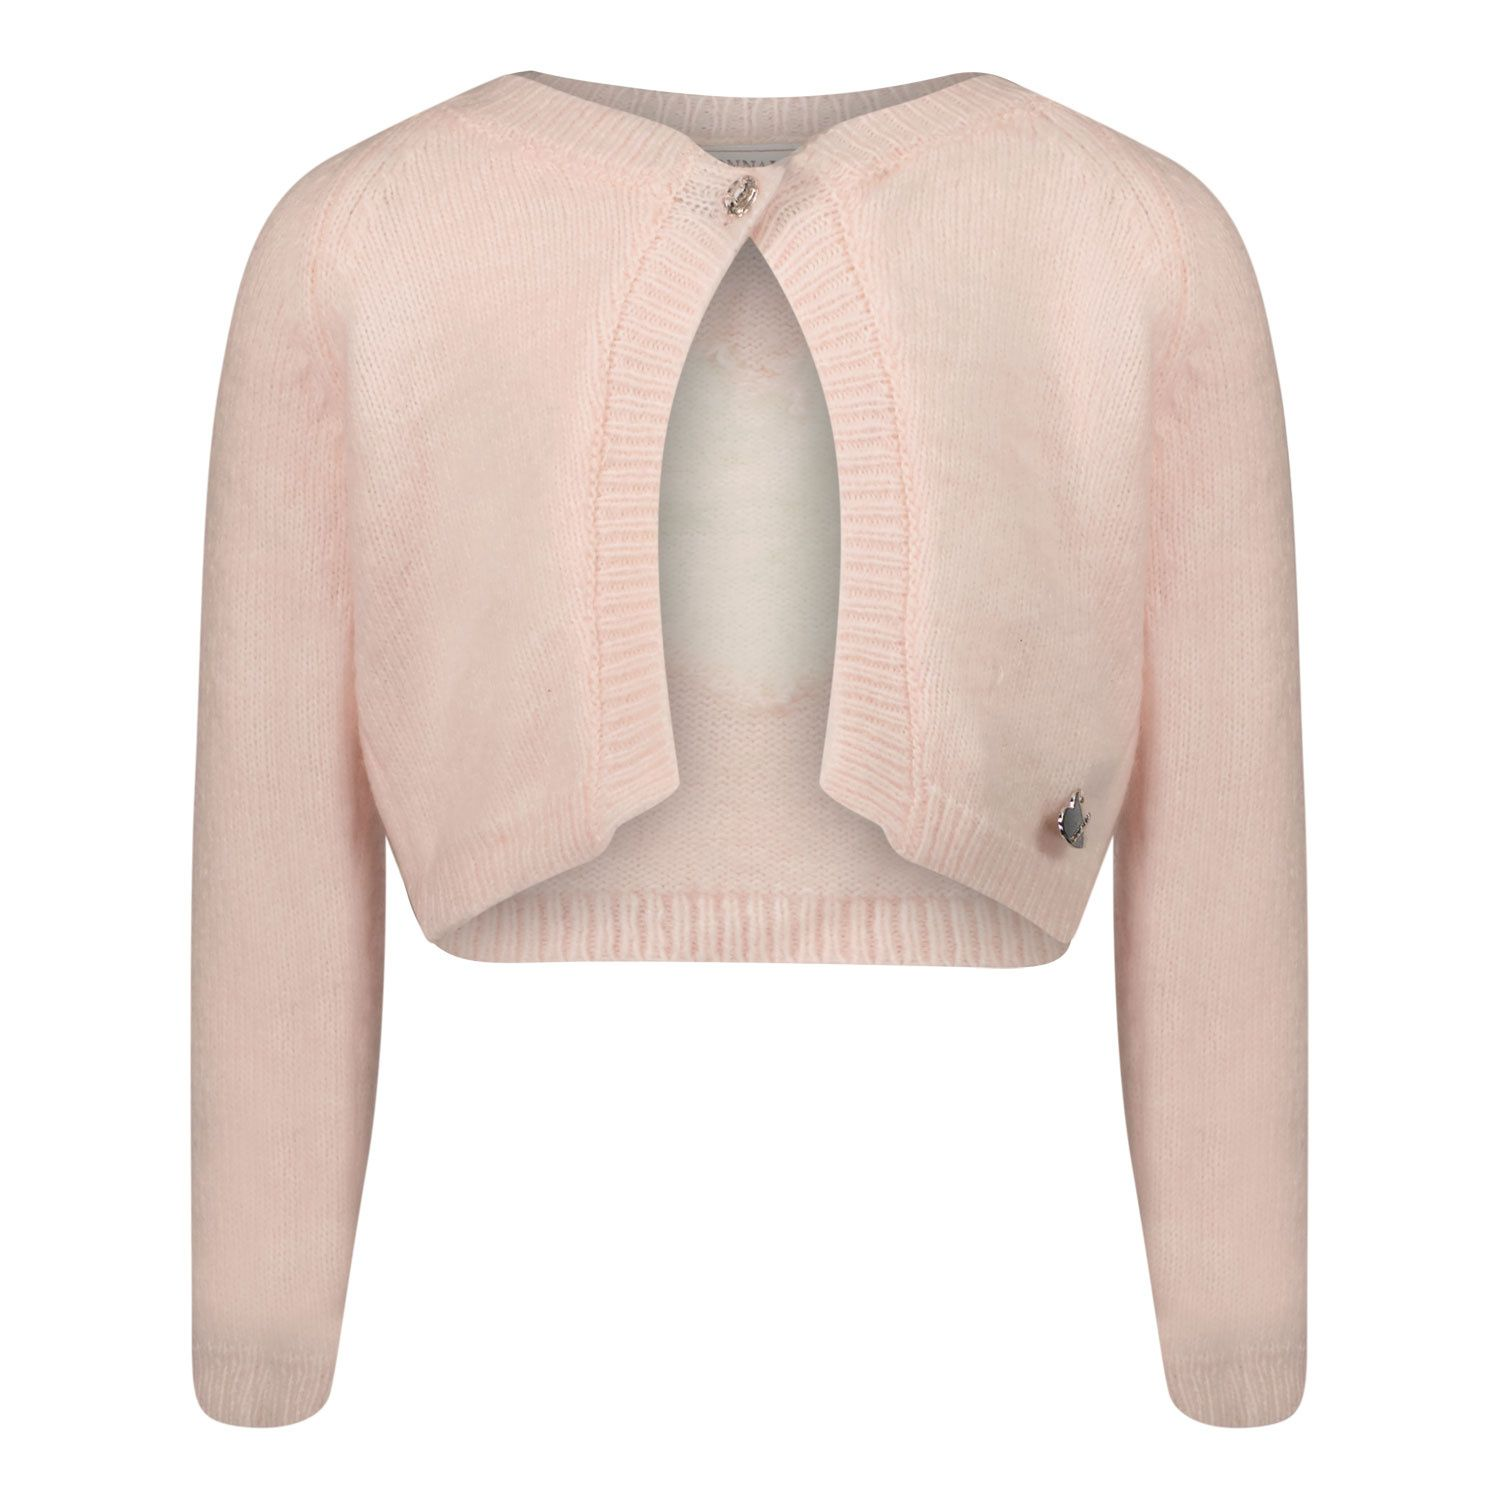 Picture of MonnaLisa 398805 baby vest light pink